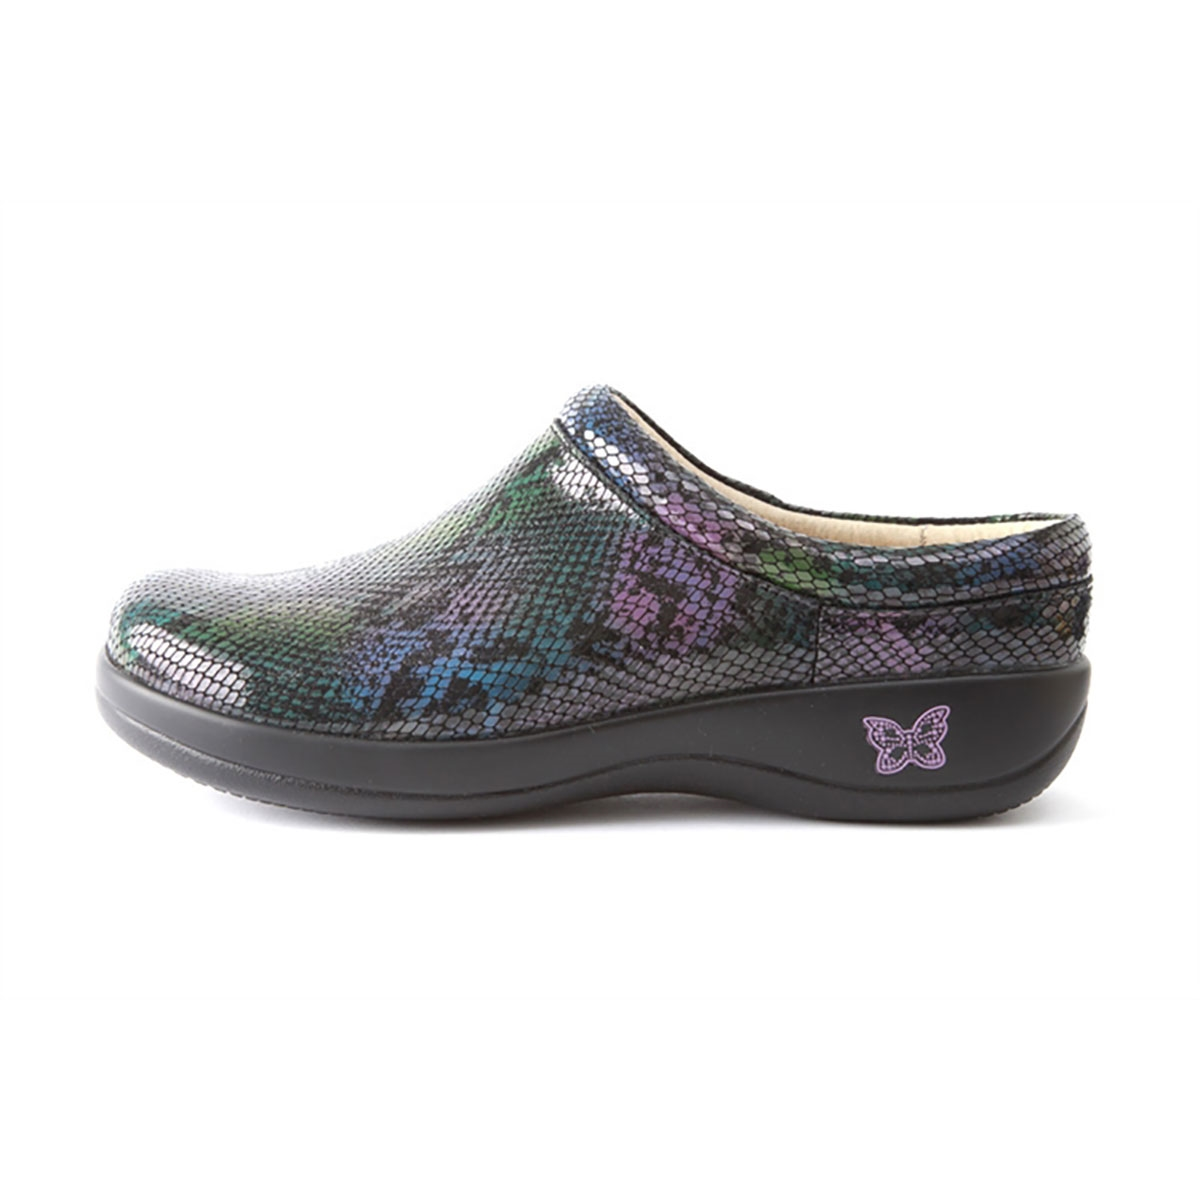 Alegria Shoes Kayla Special Serpent